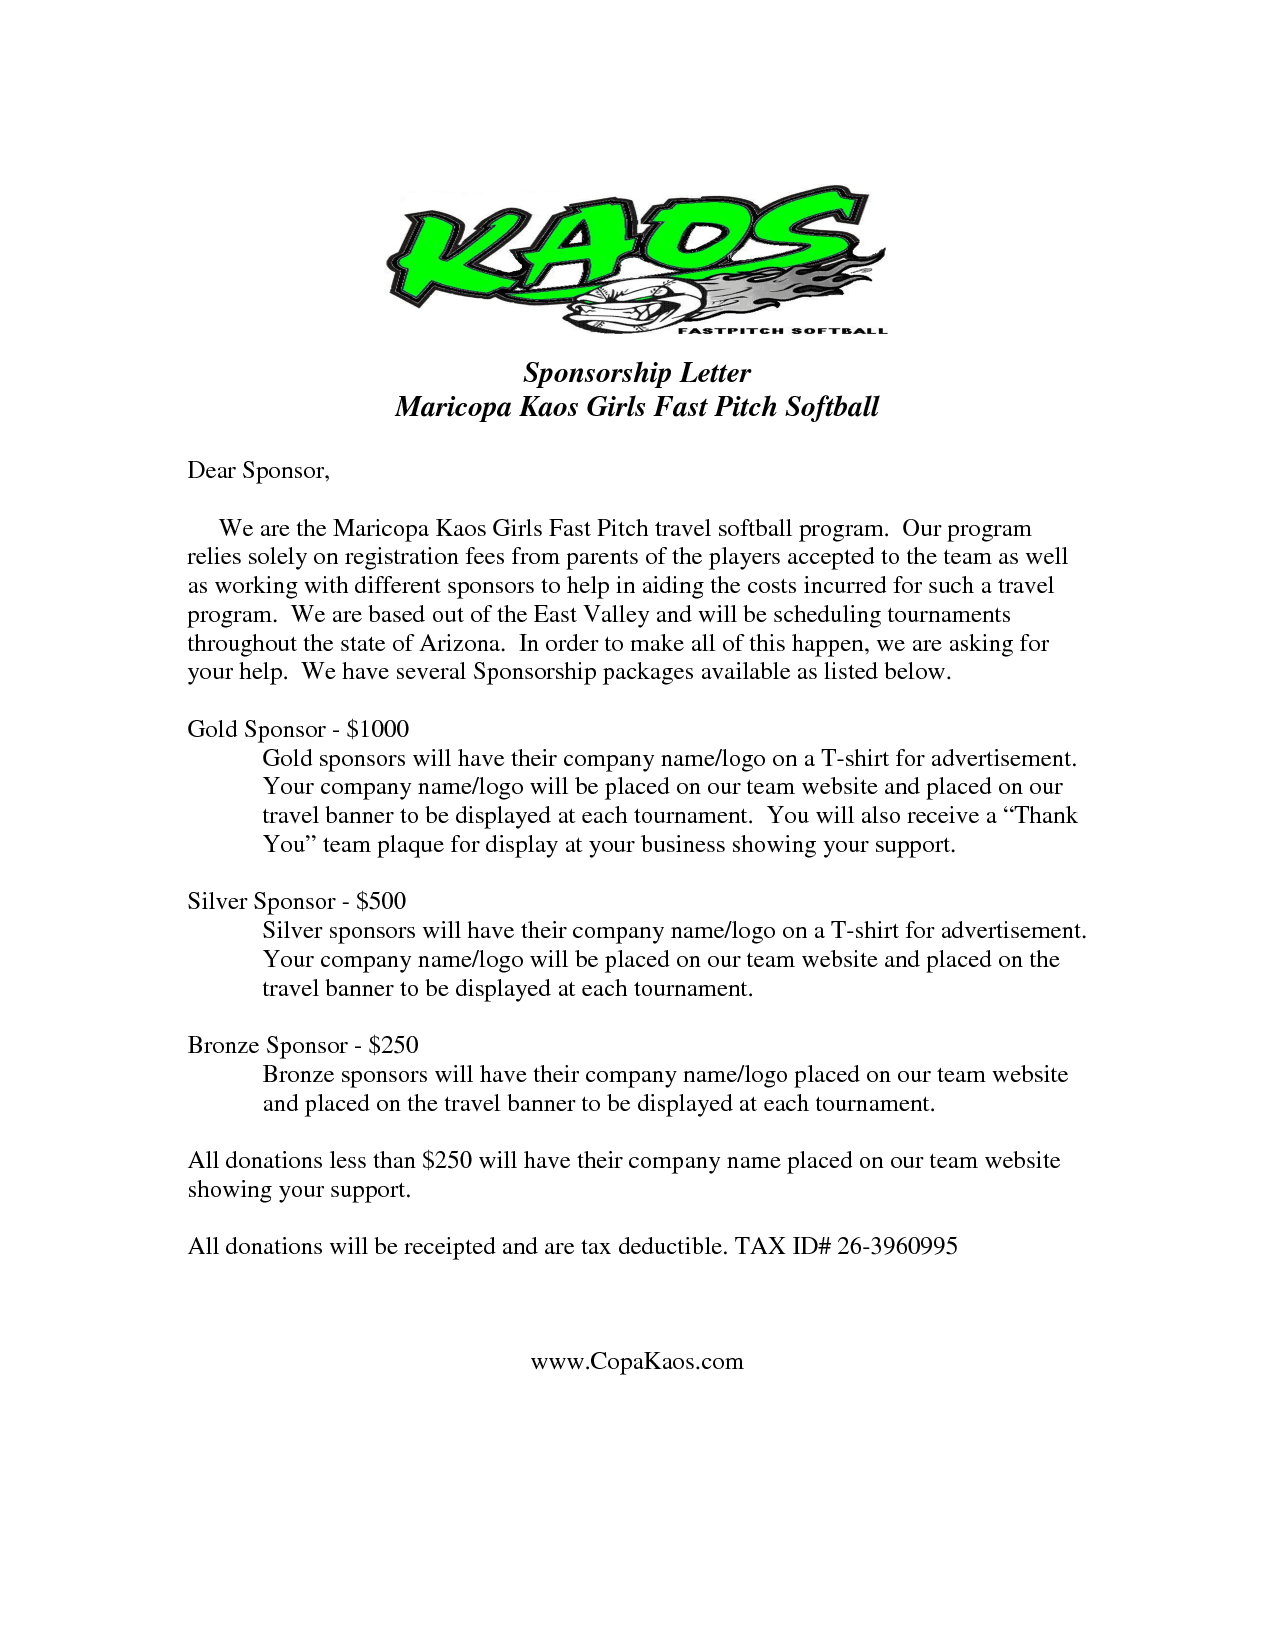 softball sponsorship letter template example-Image result for sample sponsor request letter donation 19-j